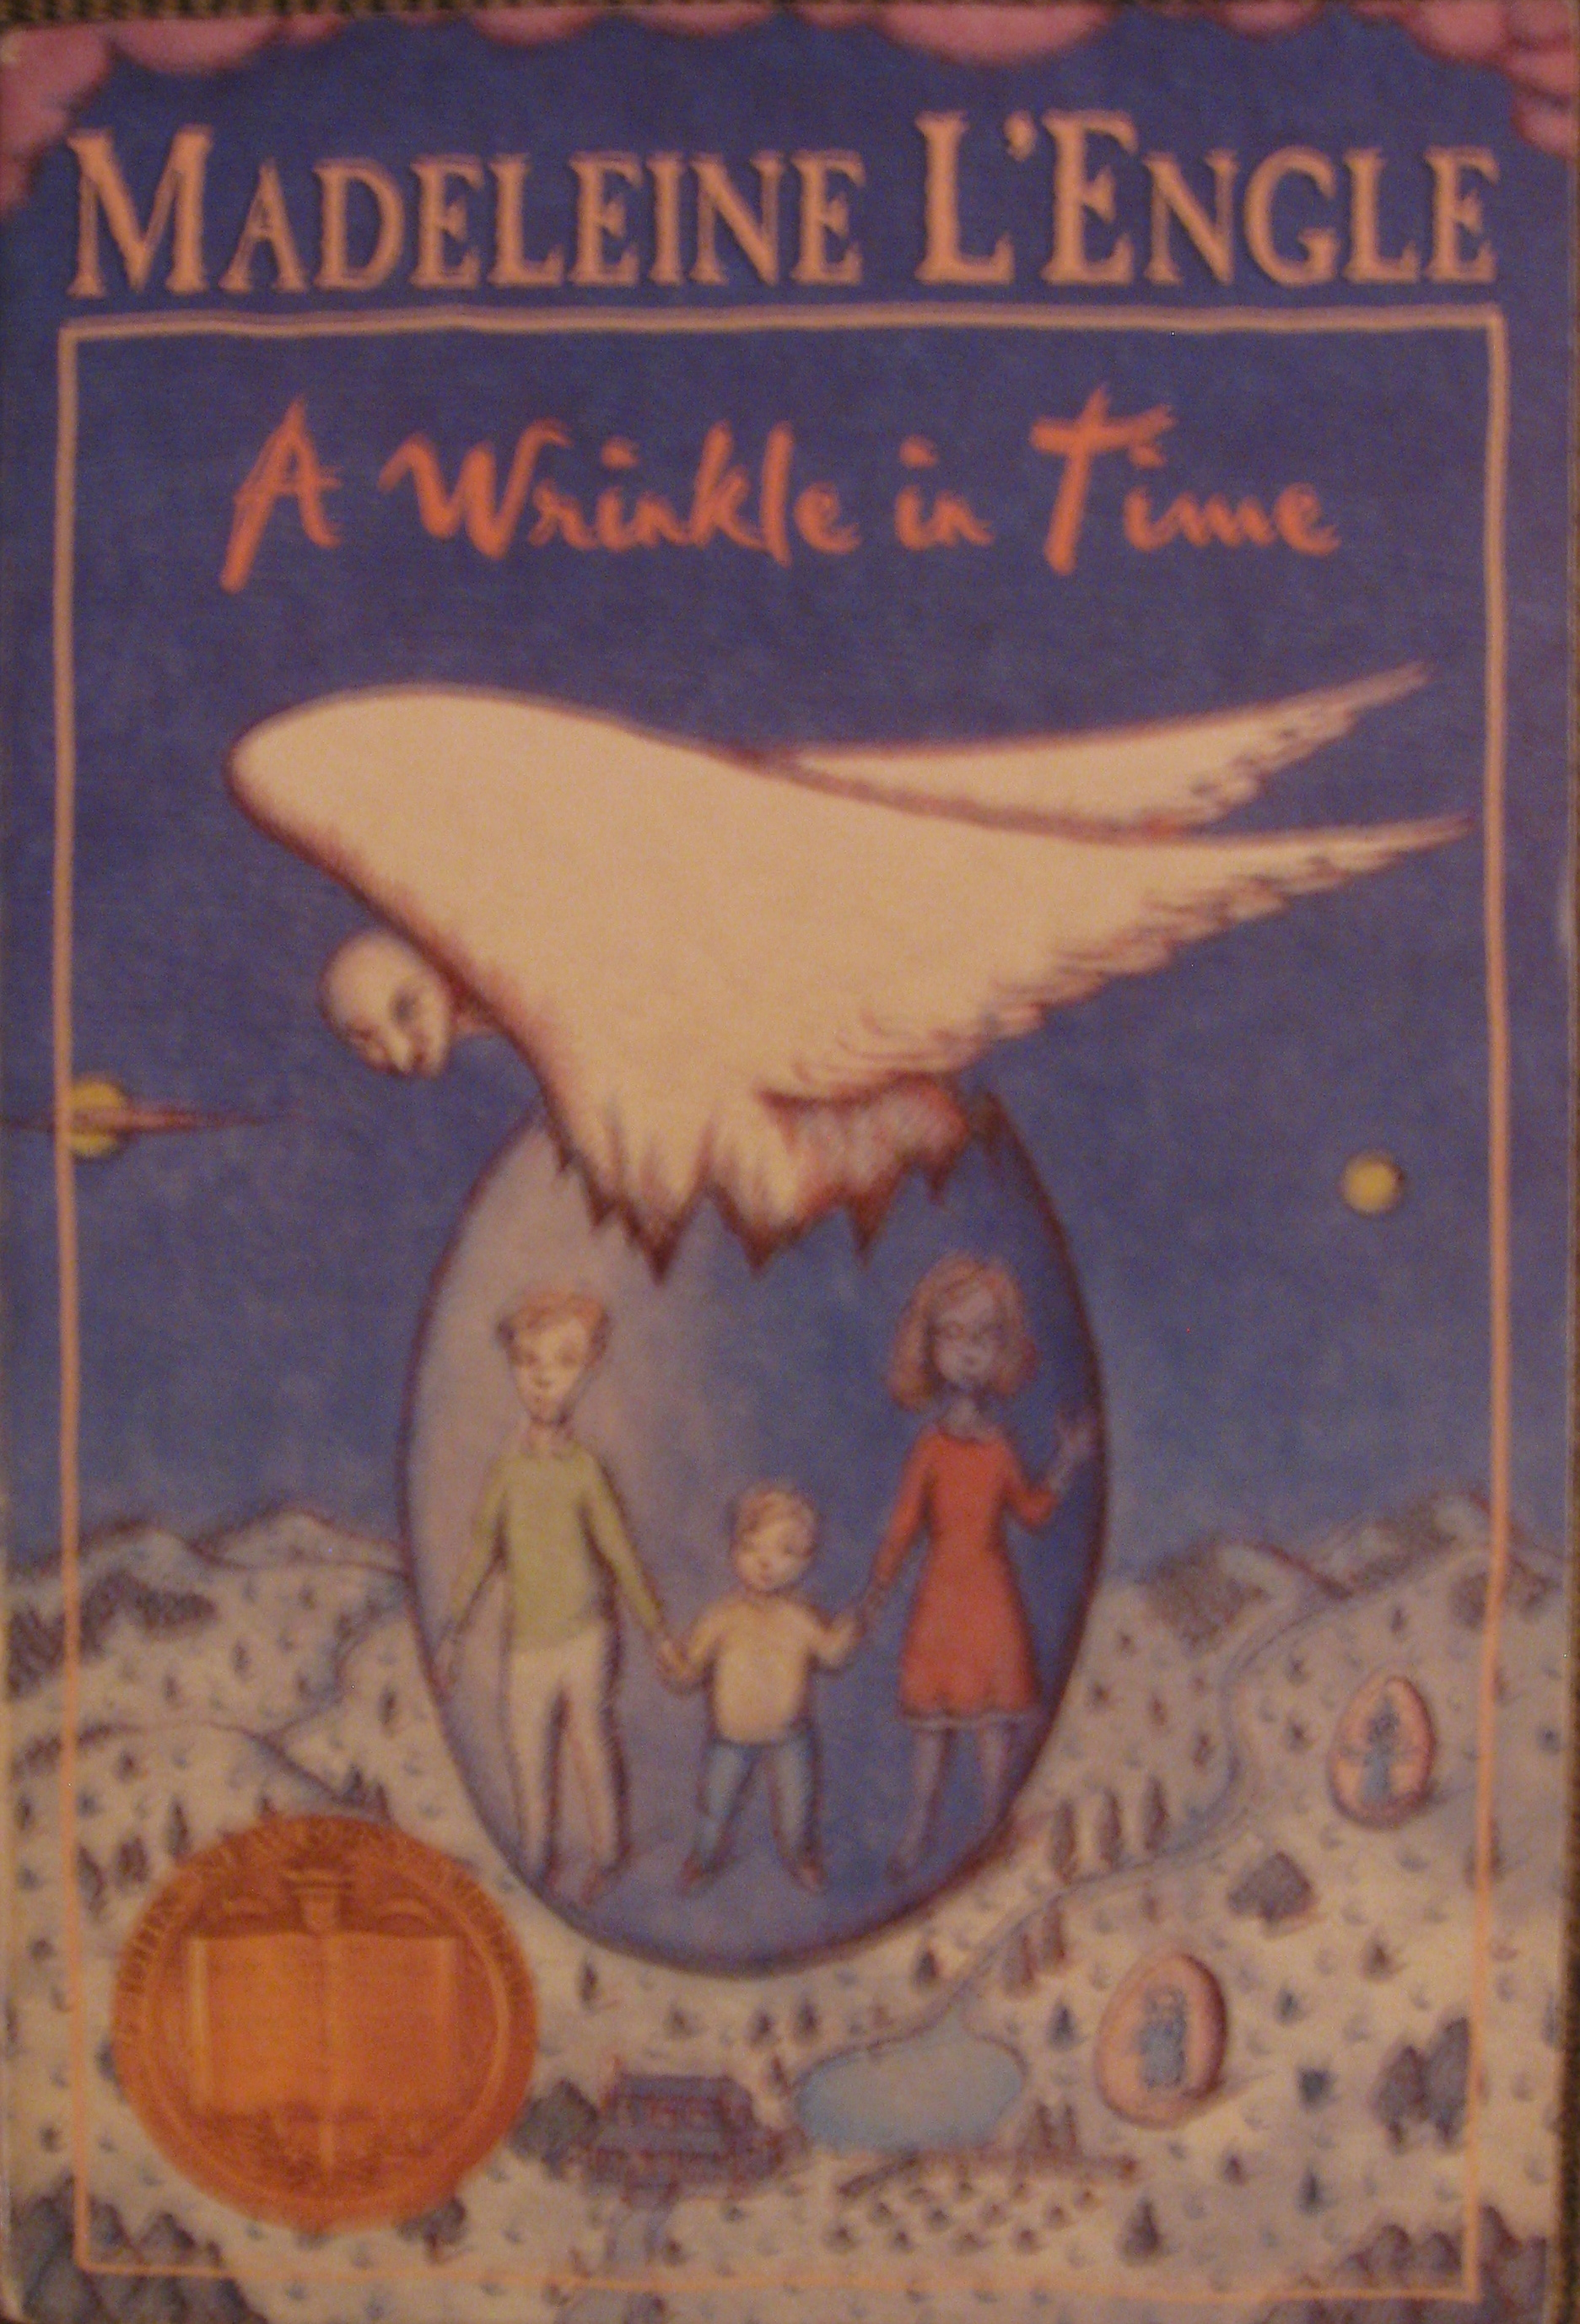 biography of madeleine lengle essay On november 16, 1983 — just two weeks before her 65th birthday and twenty years after winning the prestigious newbery medal — madeleine l'engle, author of the.